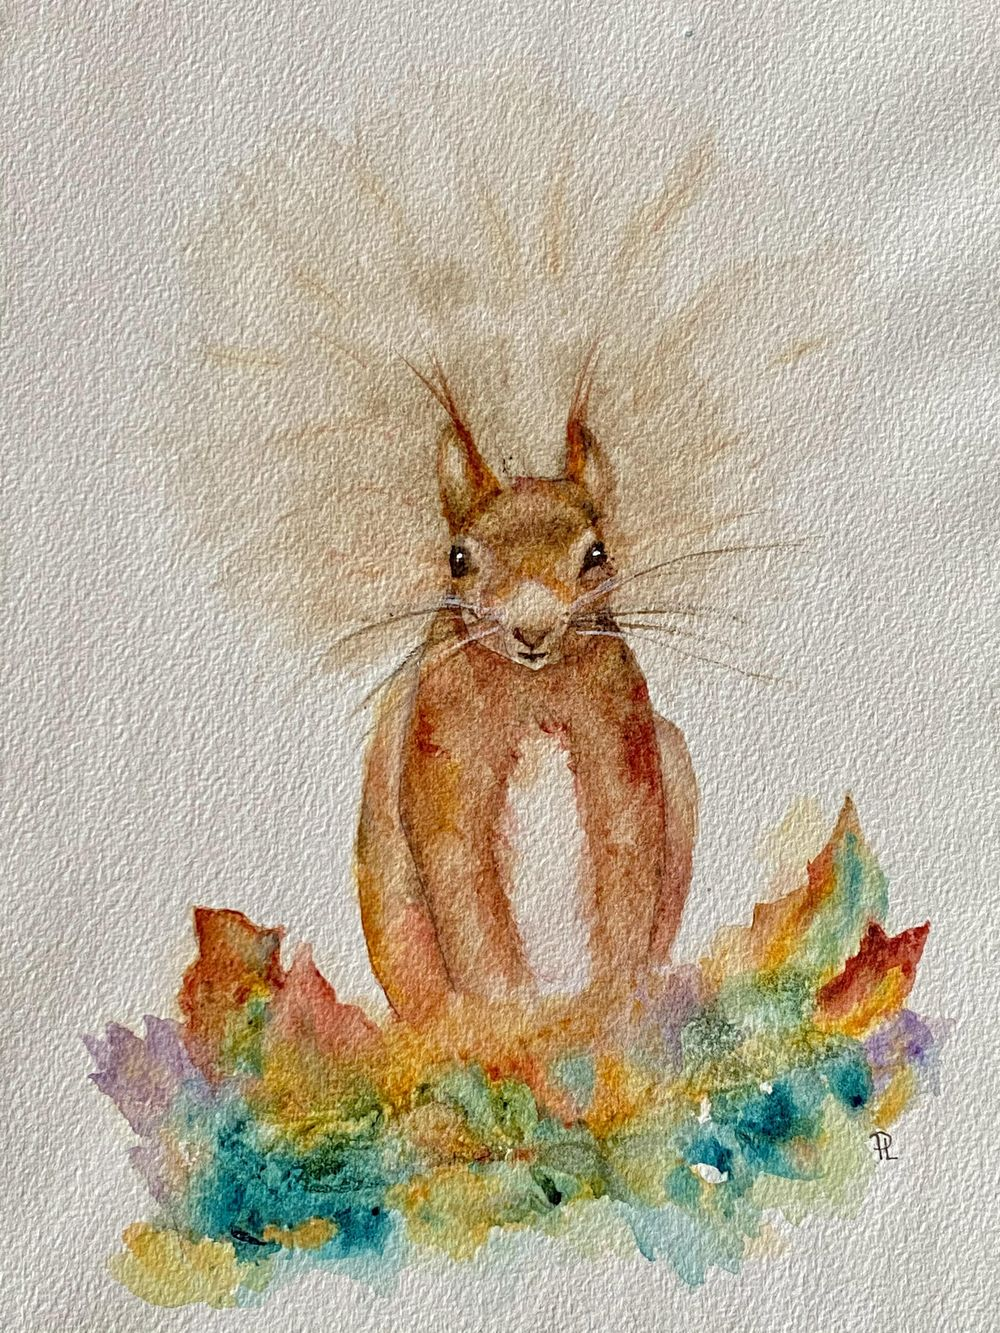 Sidney Squirrel - image 1 - student project